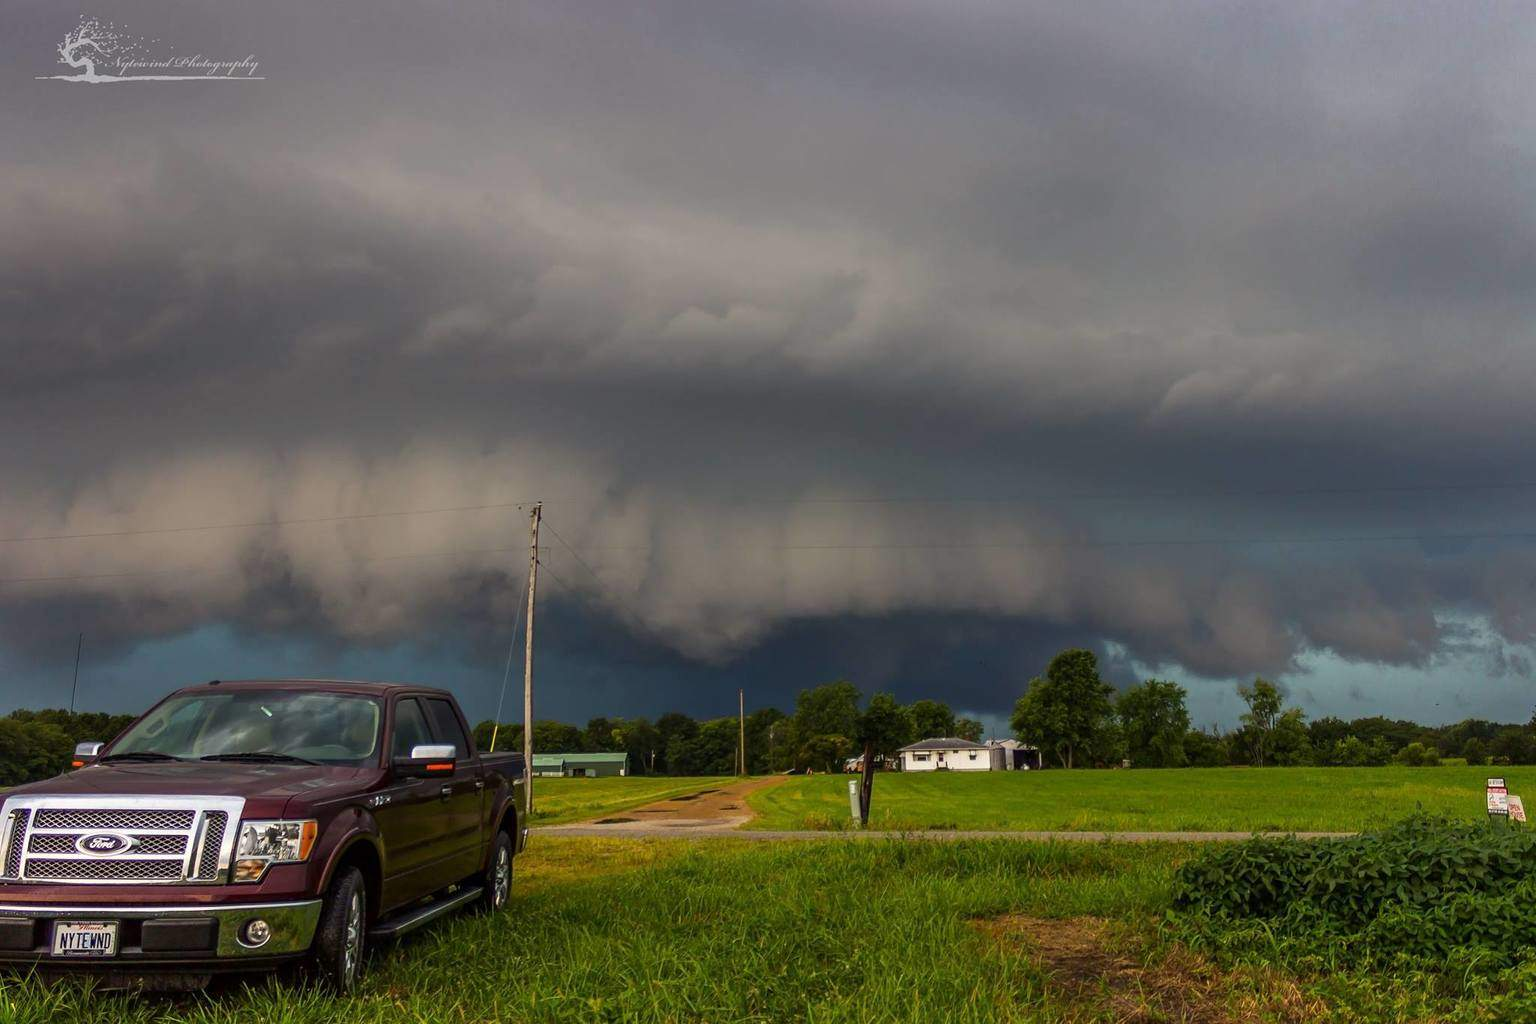 Shelf cloud with possible funnel cloud. West central Illinois August 18th 2015